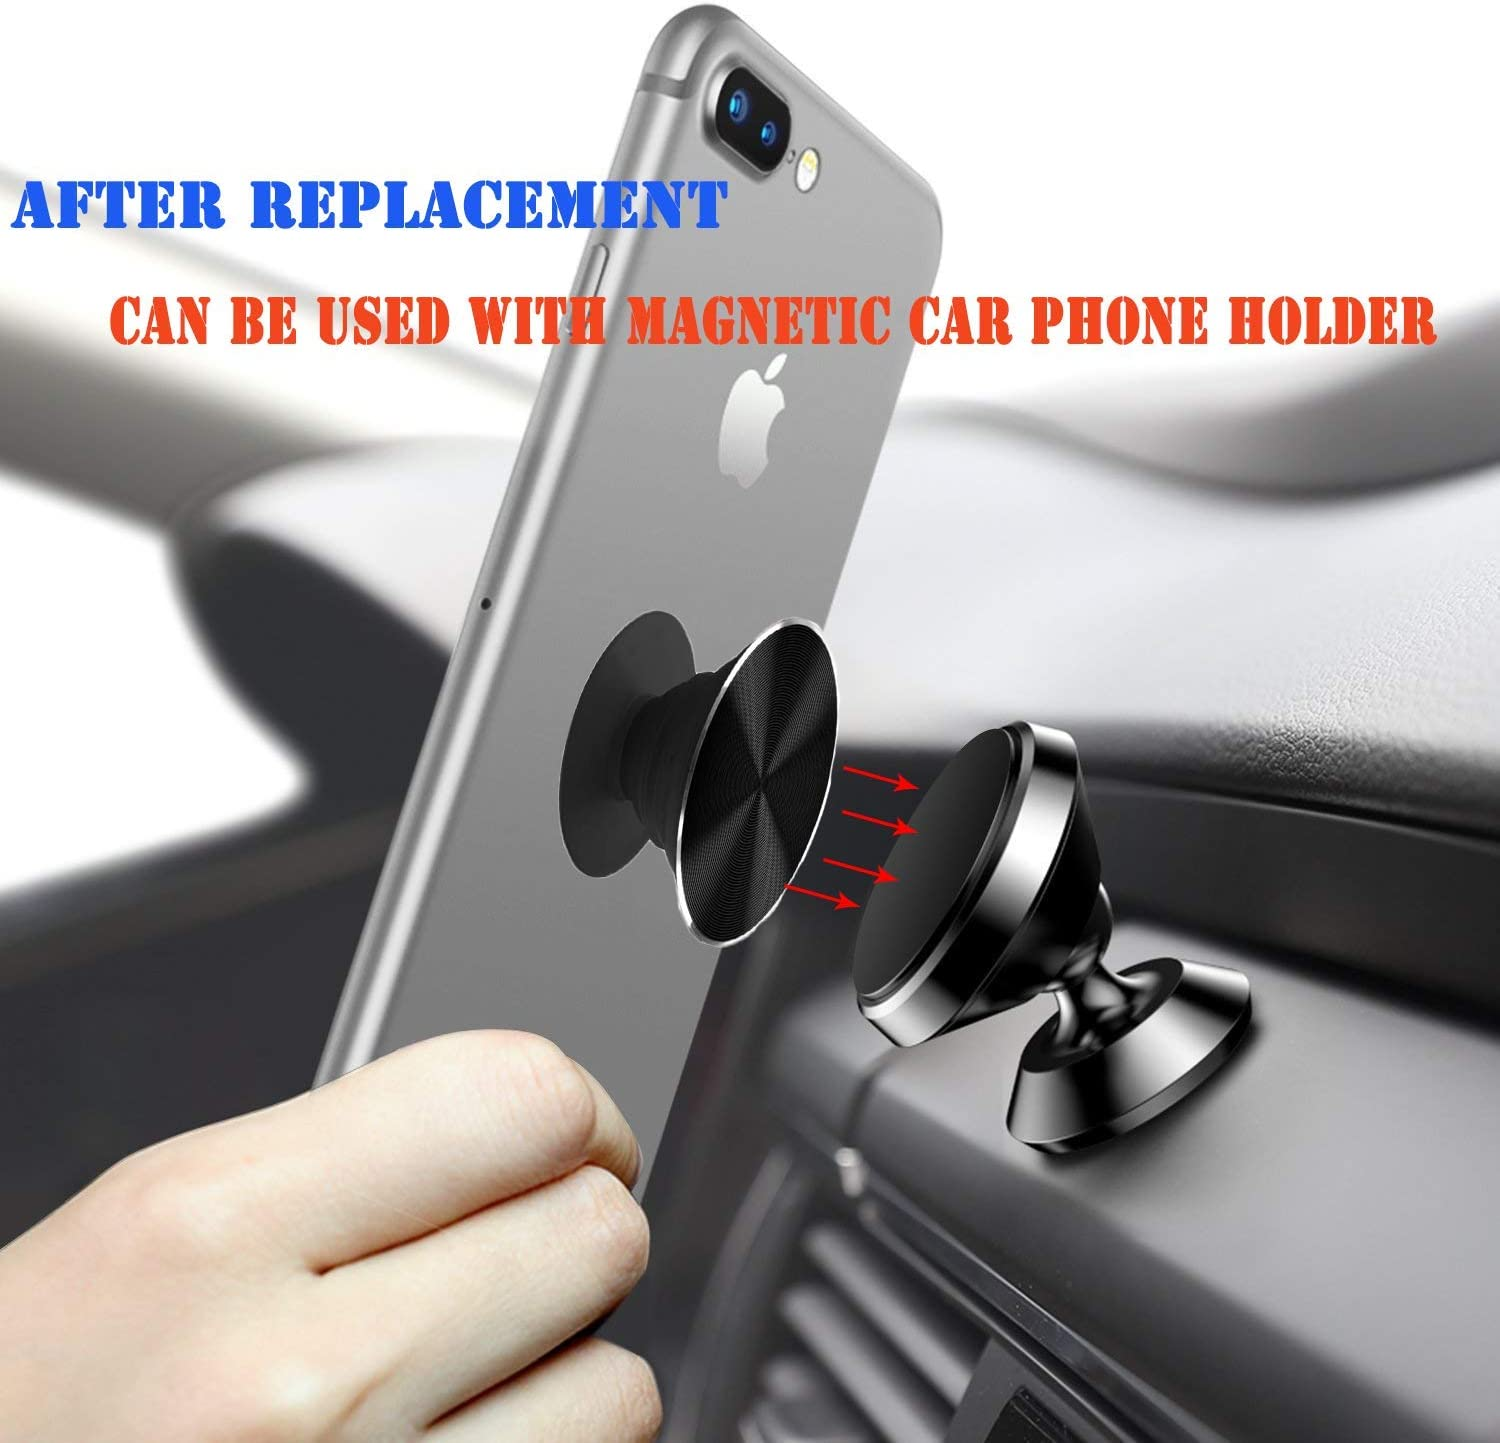 Marble Swappable Metal Covers for Collapsible Phone Grip /& Stand Replacement Pop Top Covers for Get a Different Design On Your Pop Phone Grip Can Work with Magnetic Mount Car Phone Holder